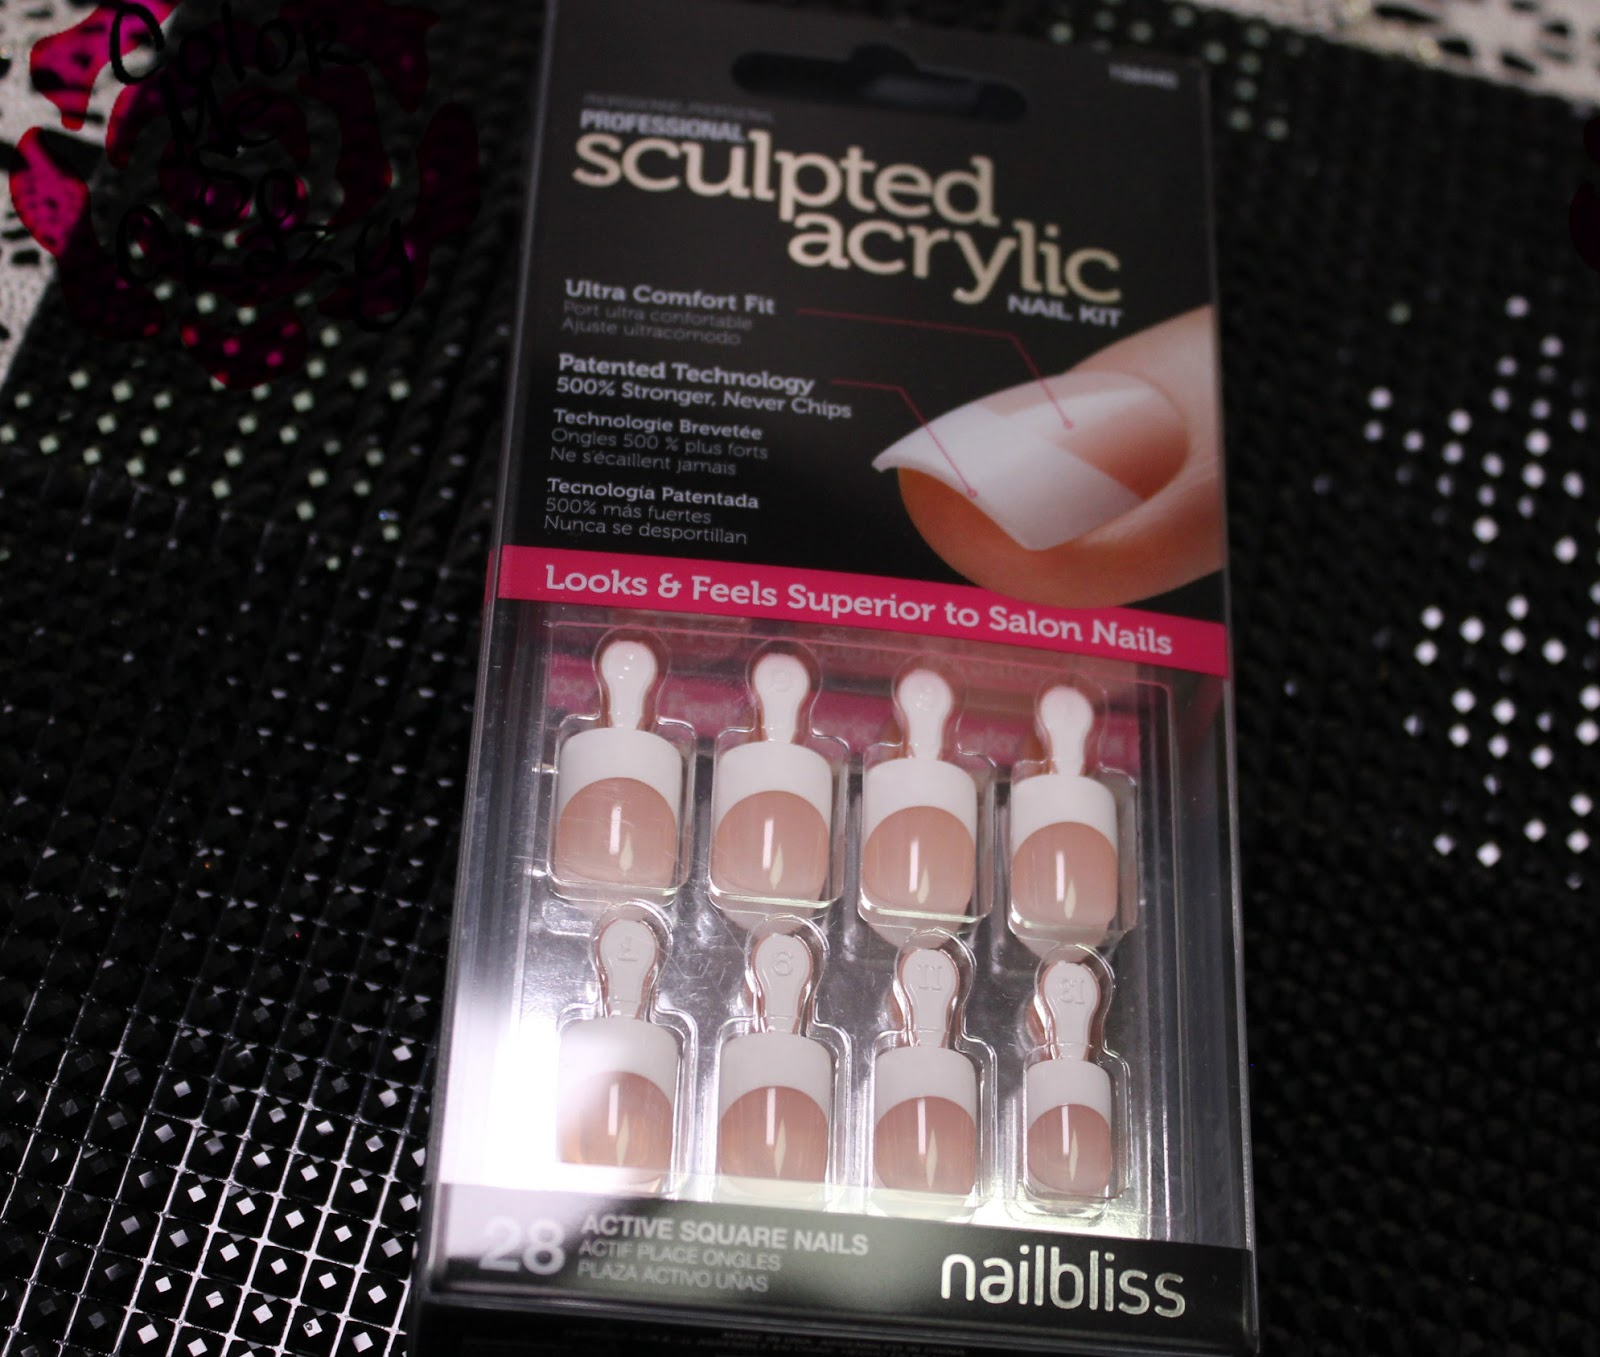 Nail Bliss Sculpted Acrylic Nail Kit